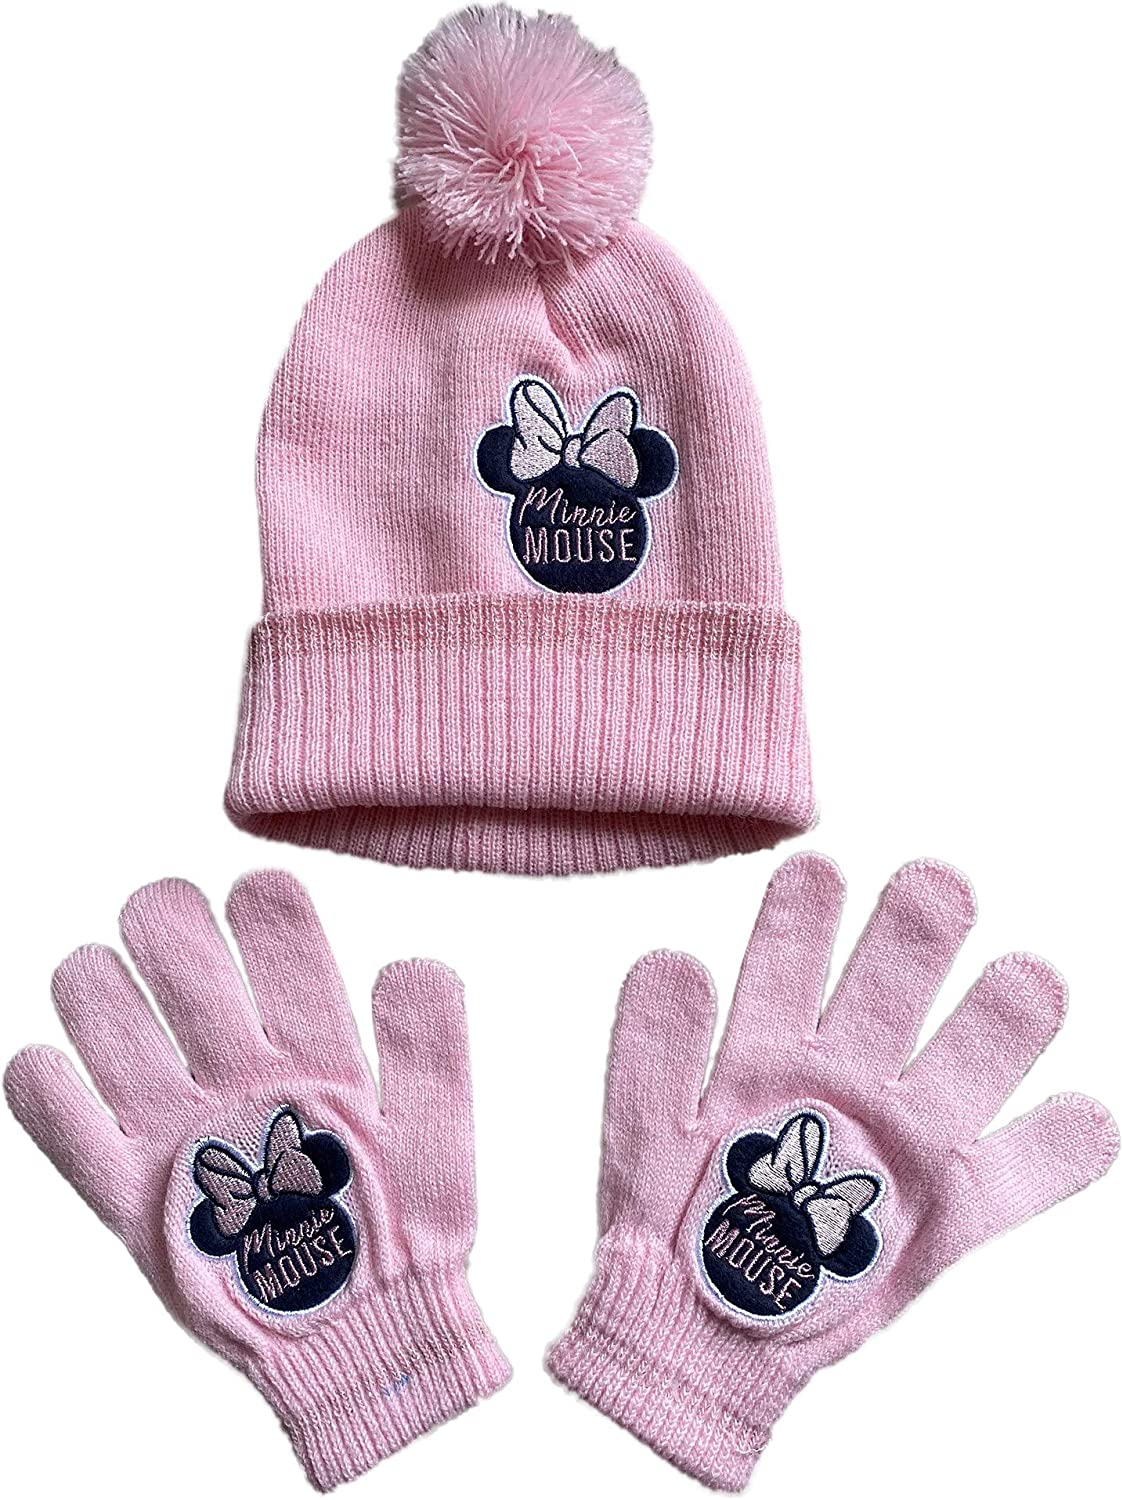 Minnie Mouse Girls Bobble Hat & Gloves Set, Thermal Pink Pom Pom Beanie Hat and Mittens Cold Weather Set